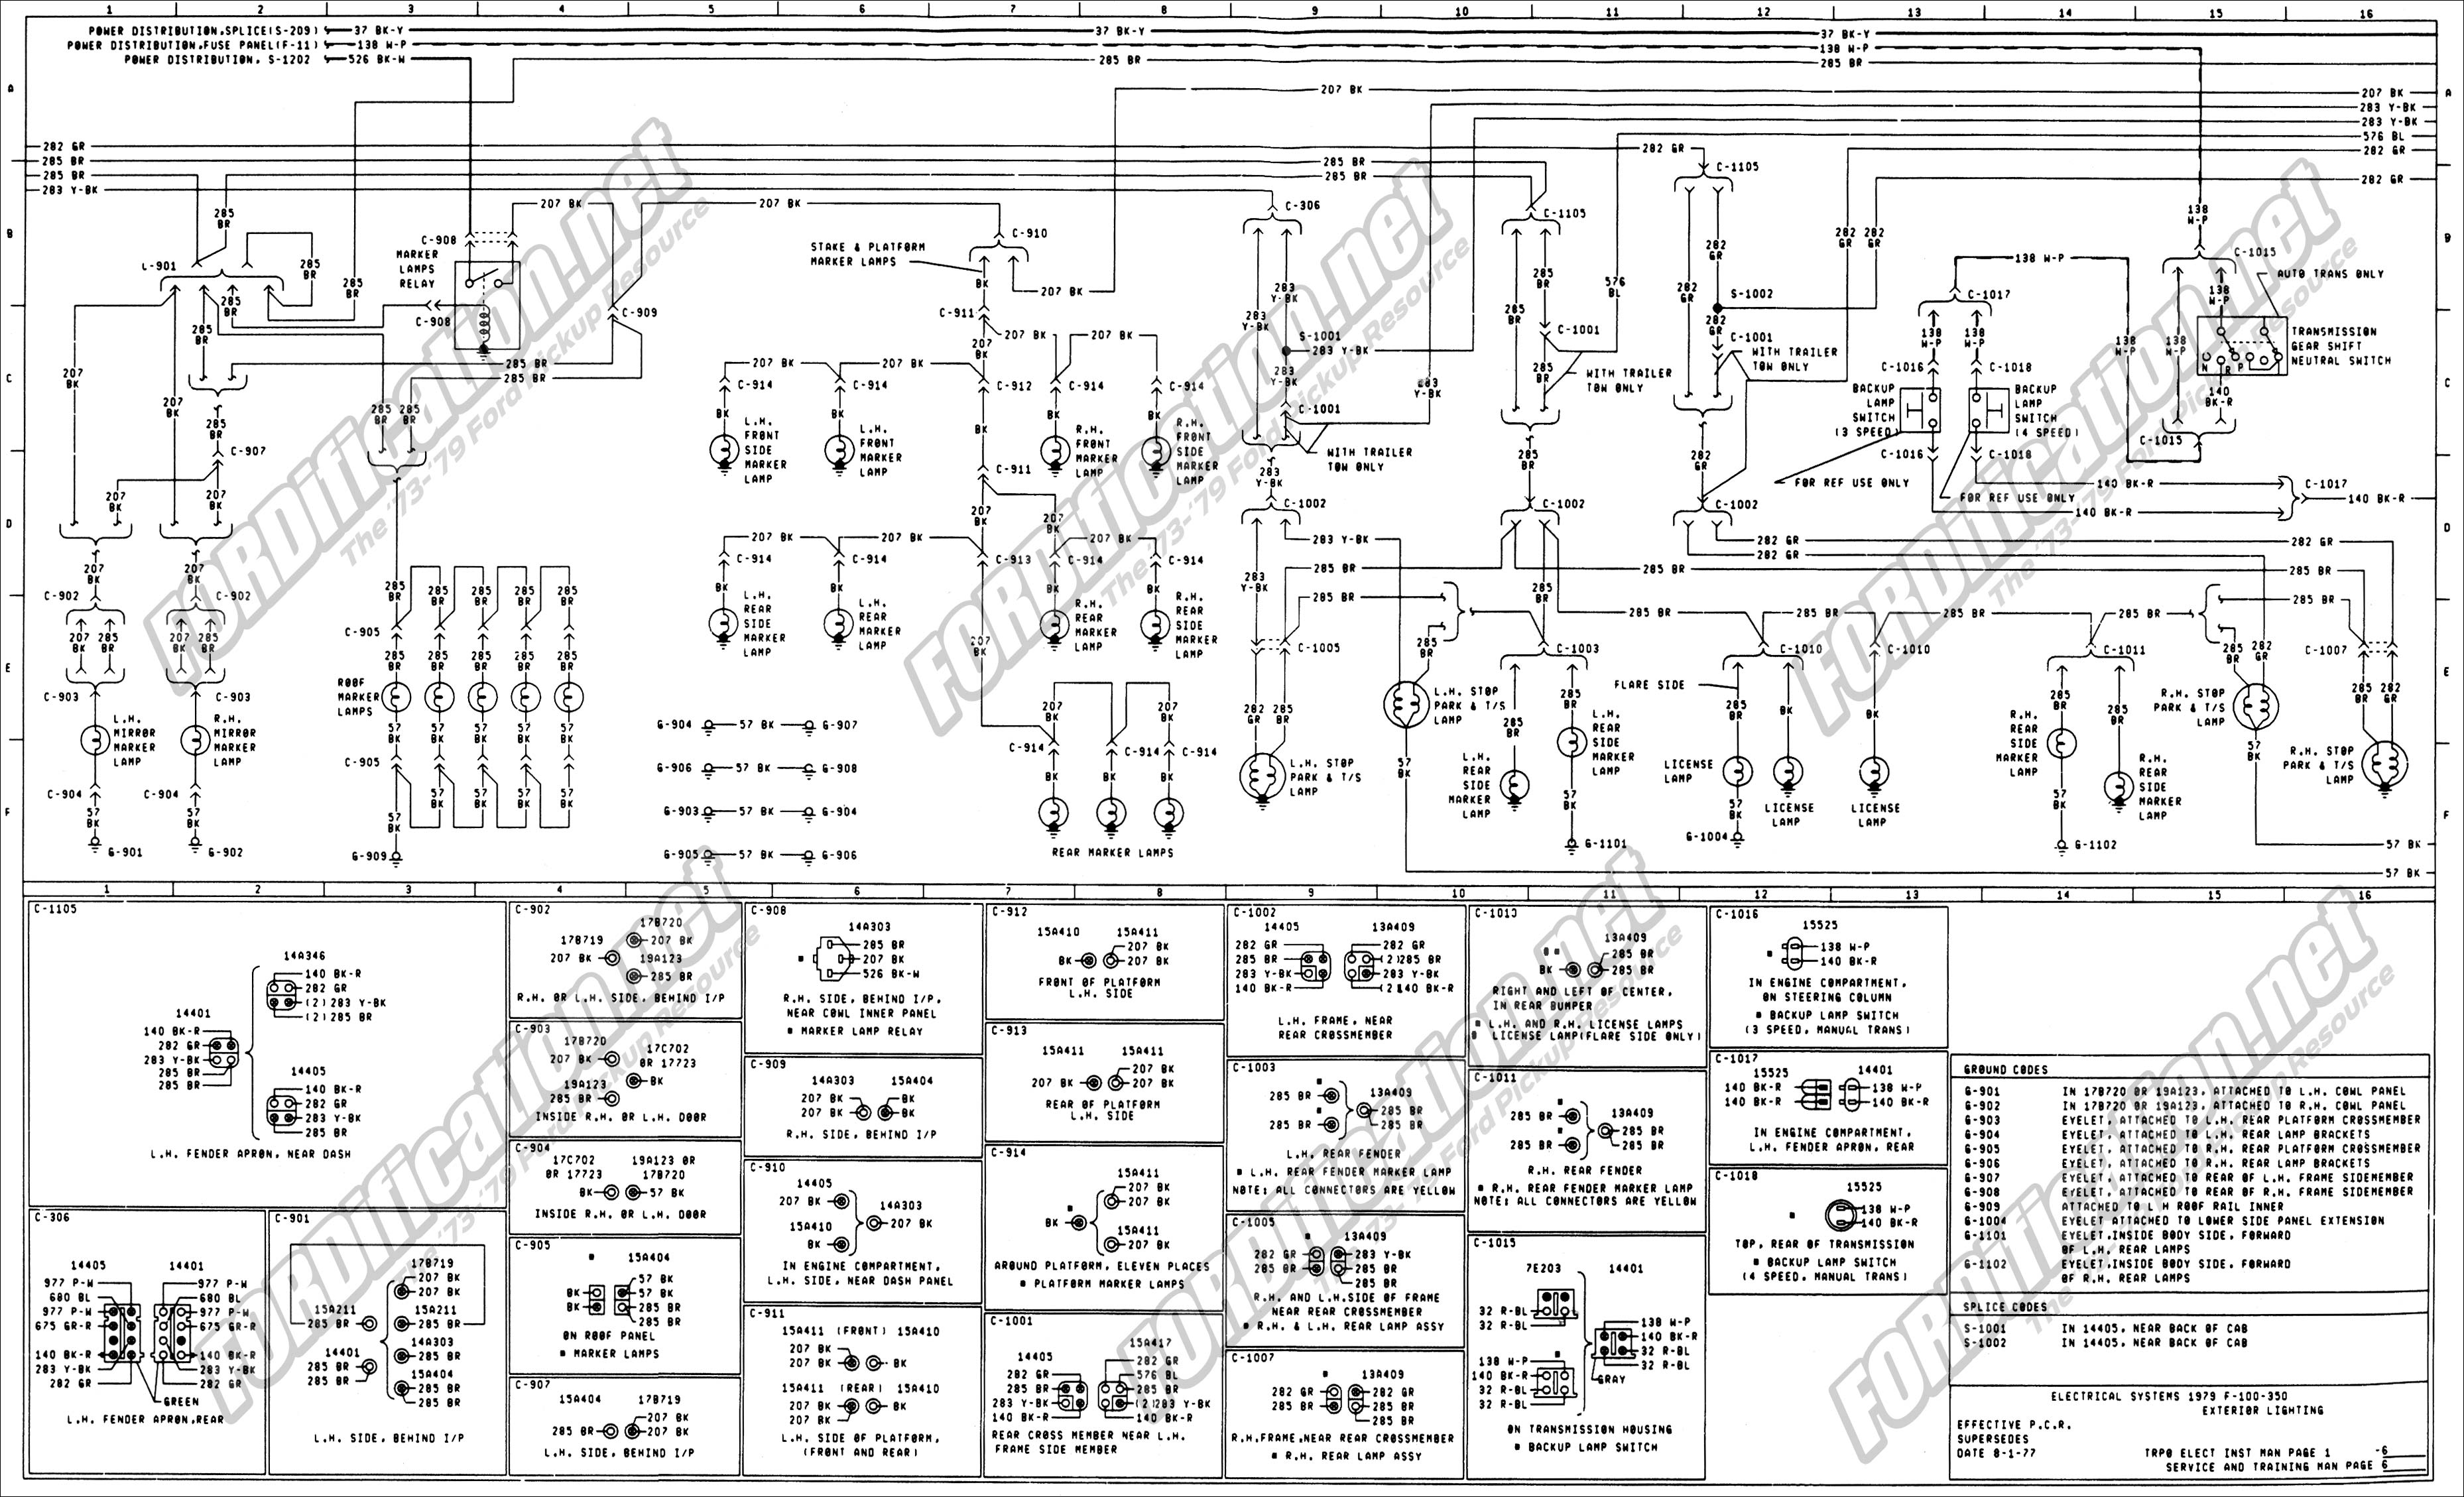 wiring_79master_6of9 1973 1979 ford truck wiring diagrams & schematics fordification net wiring harness diagram at metegol.co